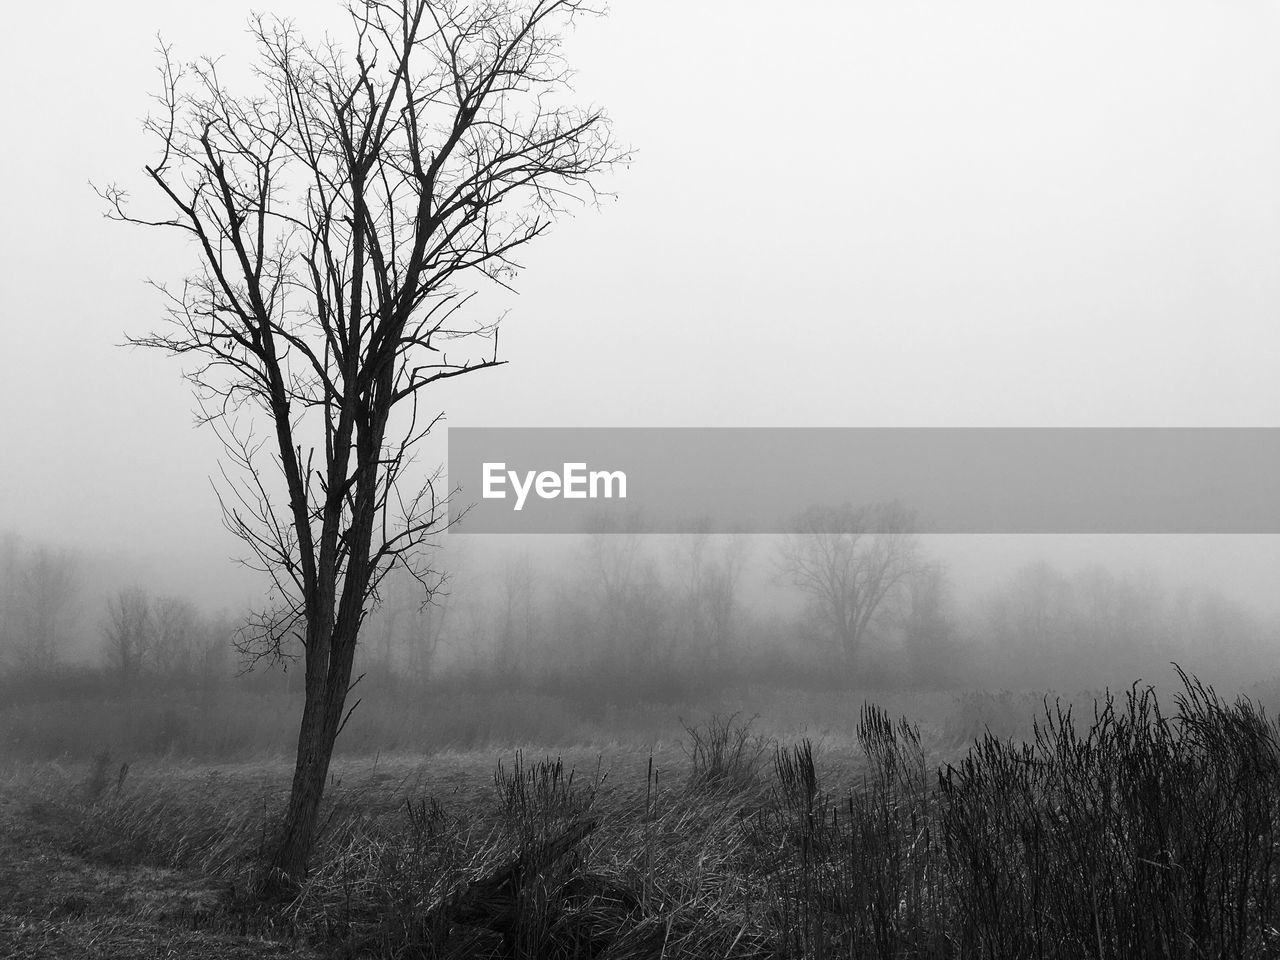 tranquility, landscape, tranquil scene, bare tree, fog, nature, beauty in nature, tree, outdoors, scenics, mist, hazy, day, no people, lone, grass, sky